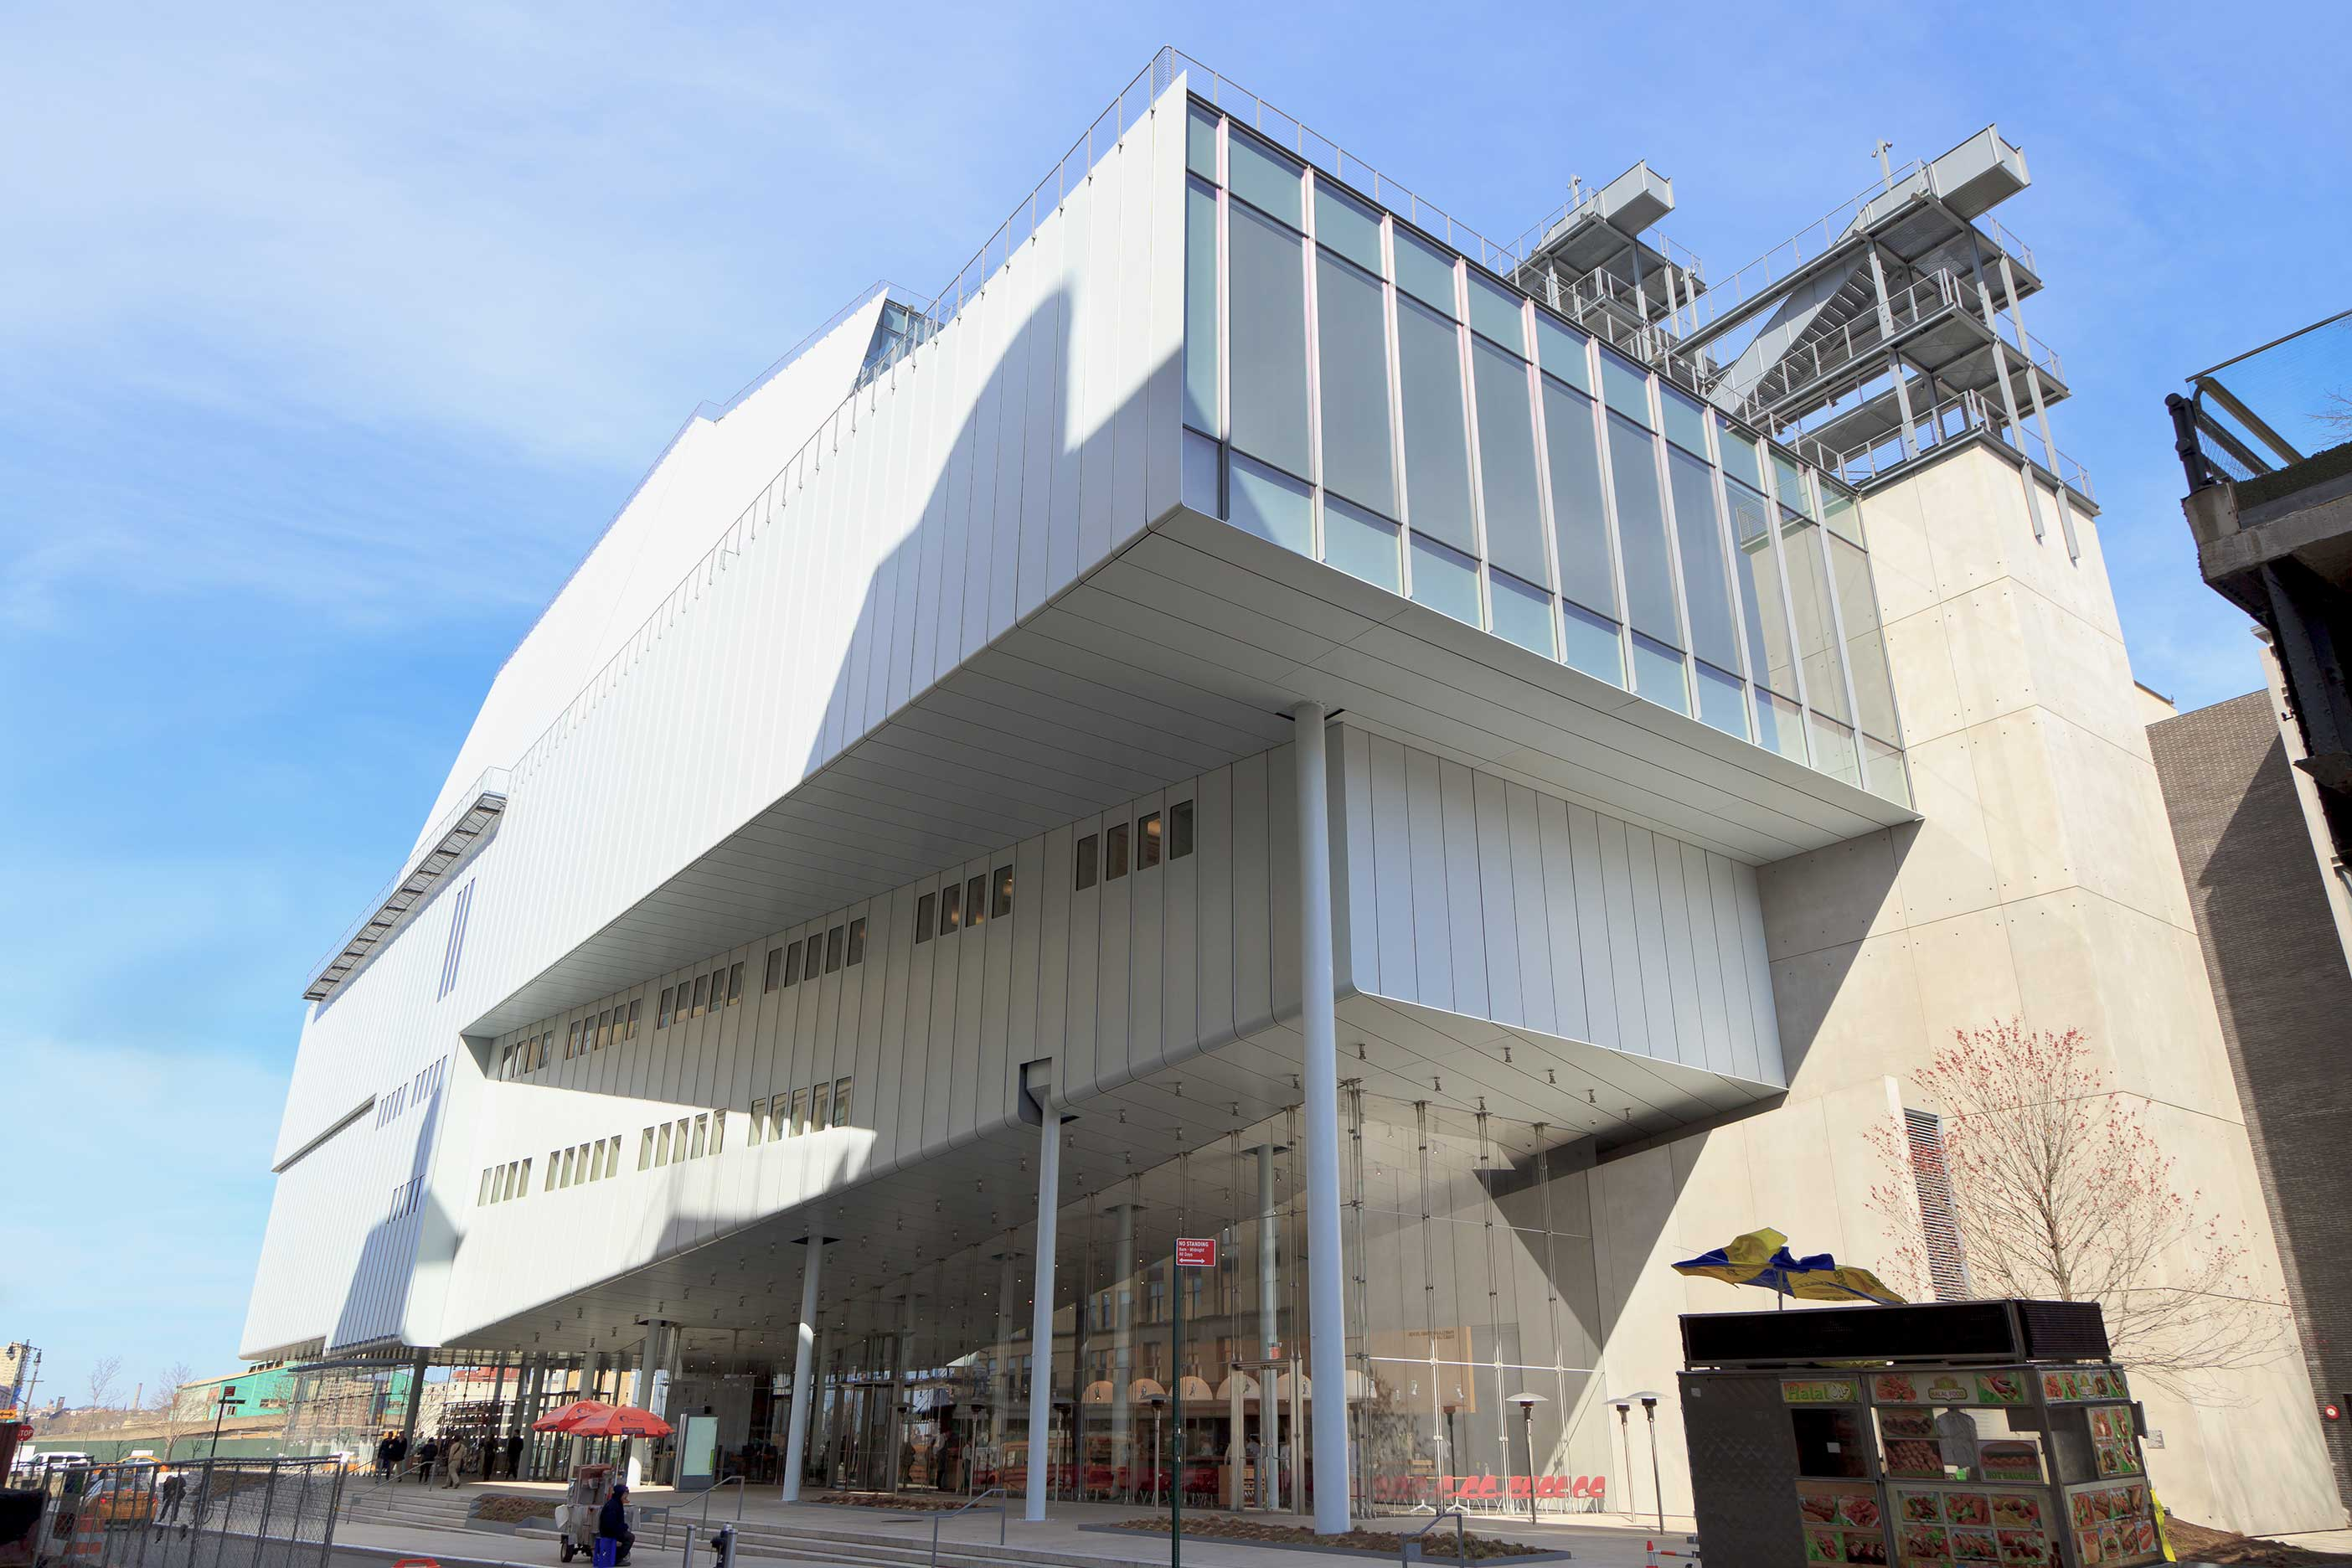 PLACE TO BE - WHITNEY MUSEUM OF AMERICAN ART